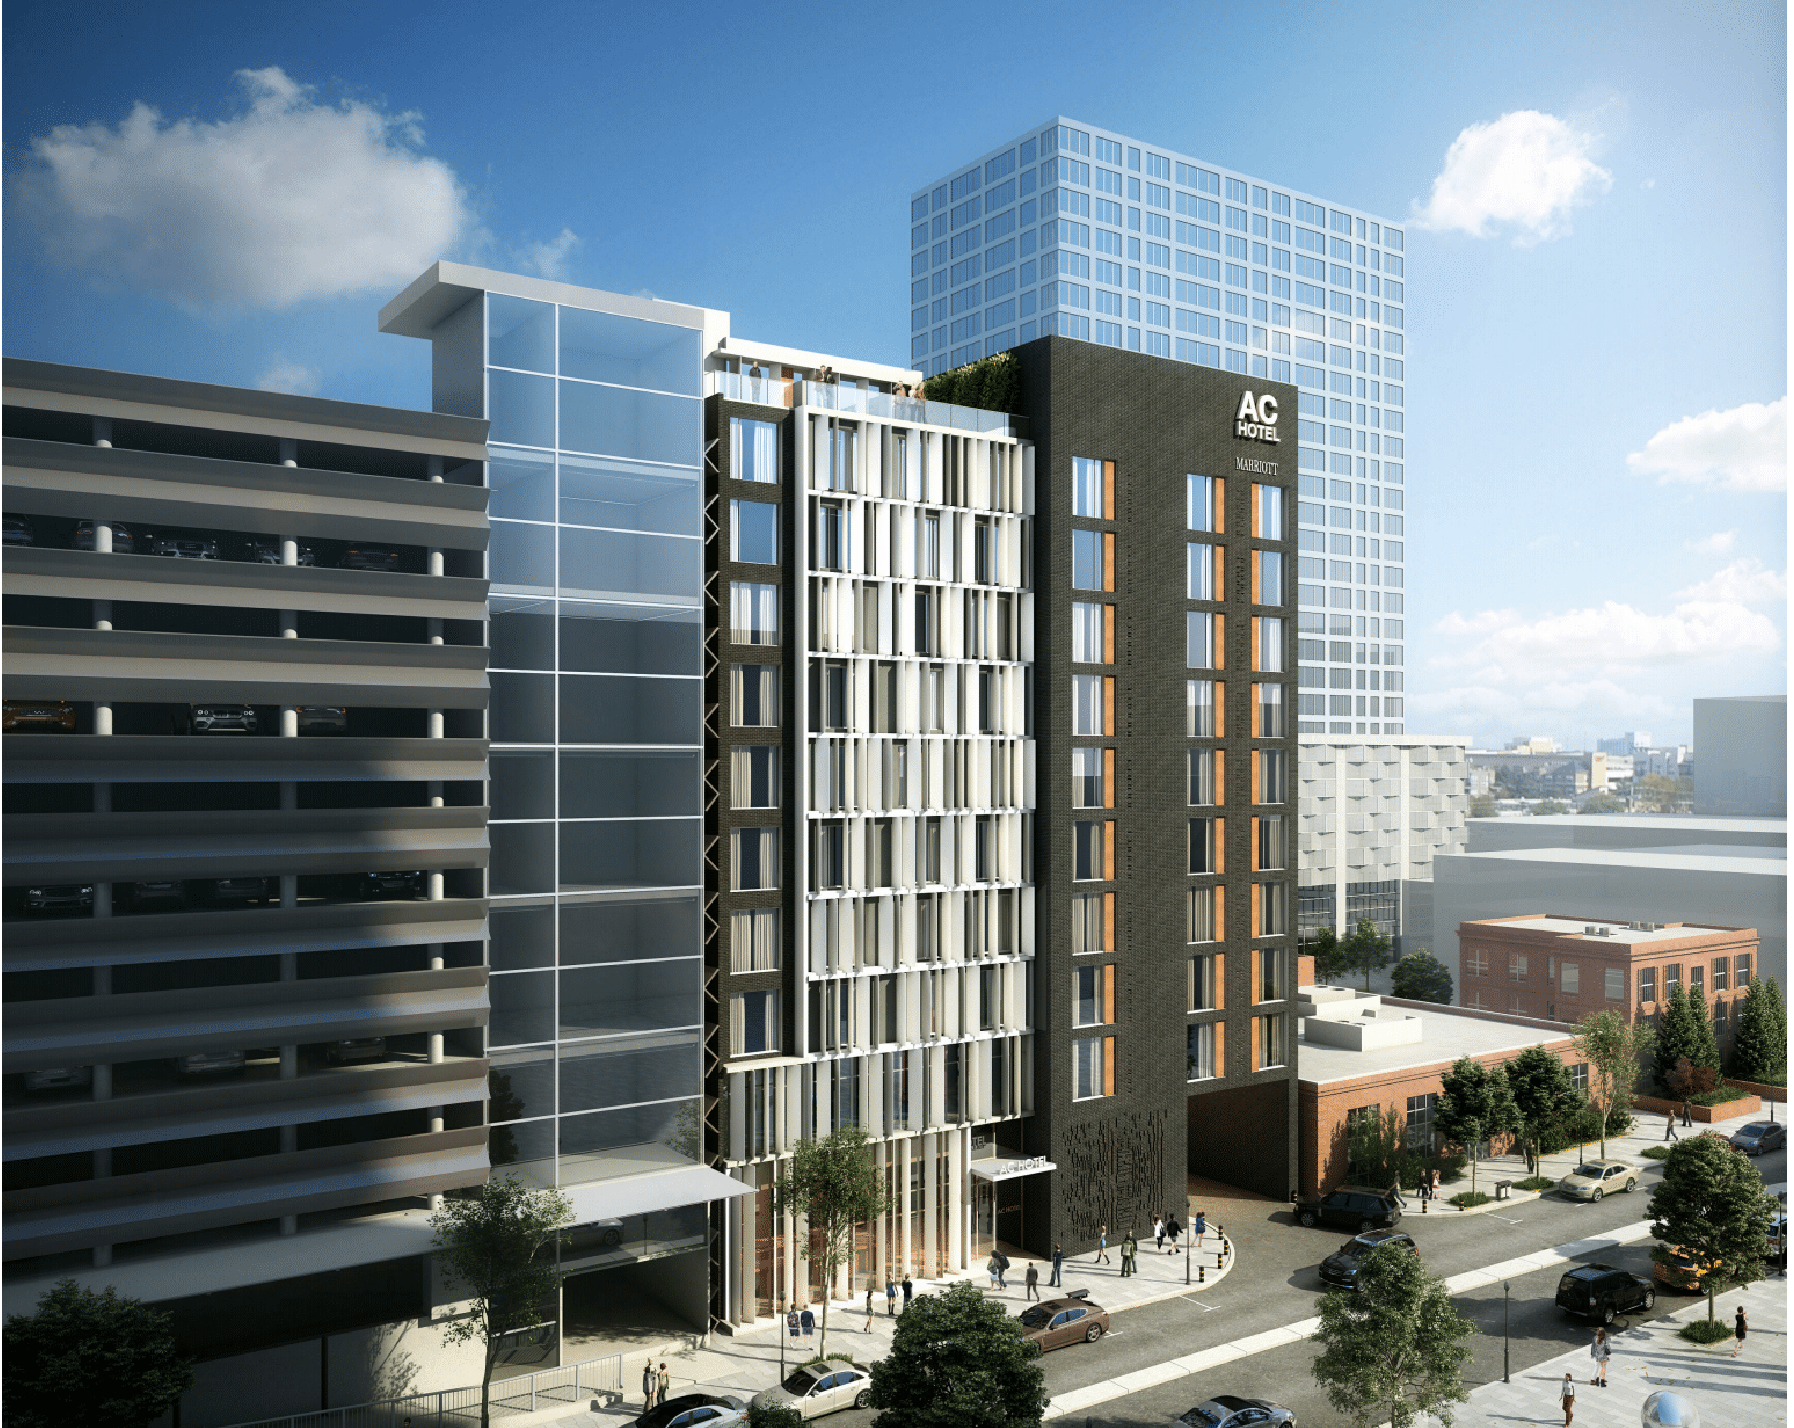 1a59de6f AC Hotel gets positive conceptual review from Clayton Plan Commission